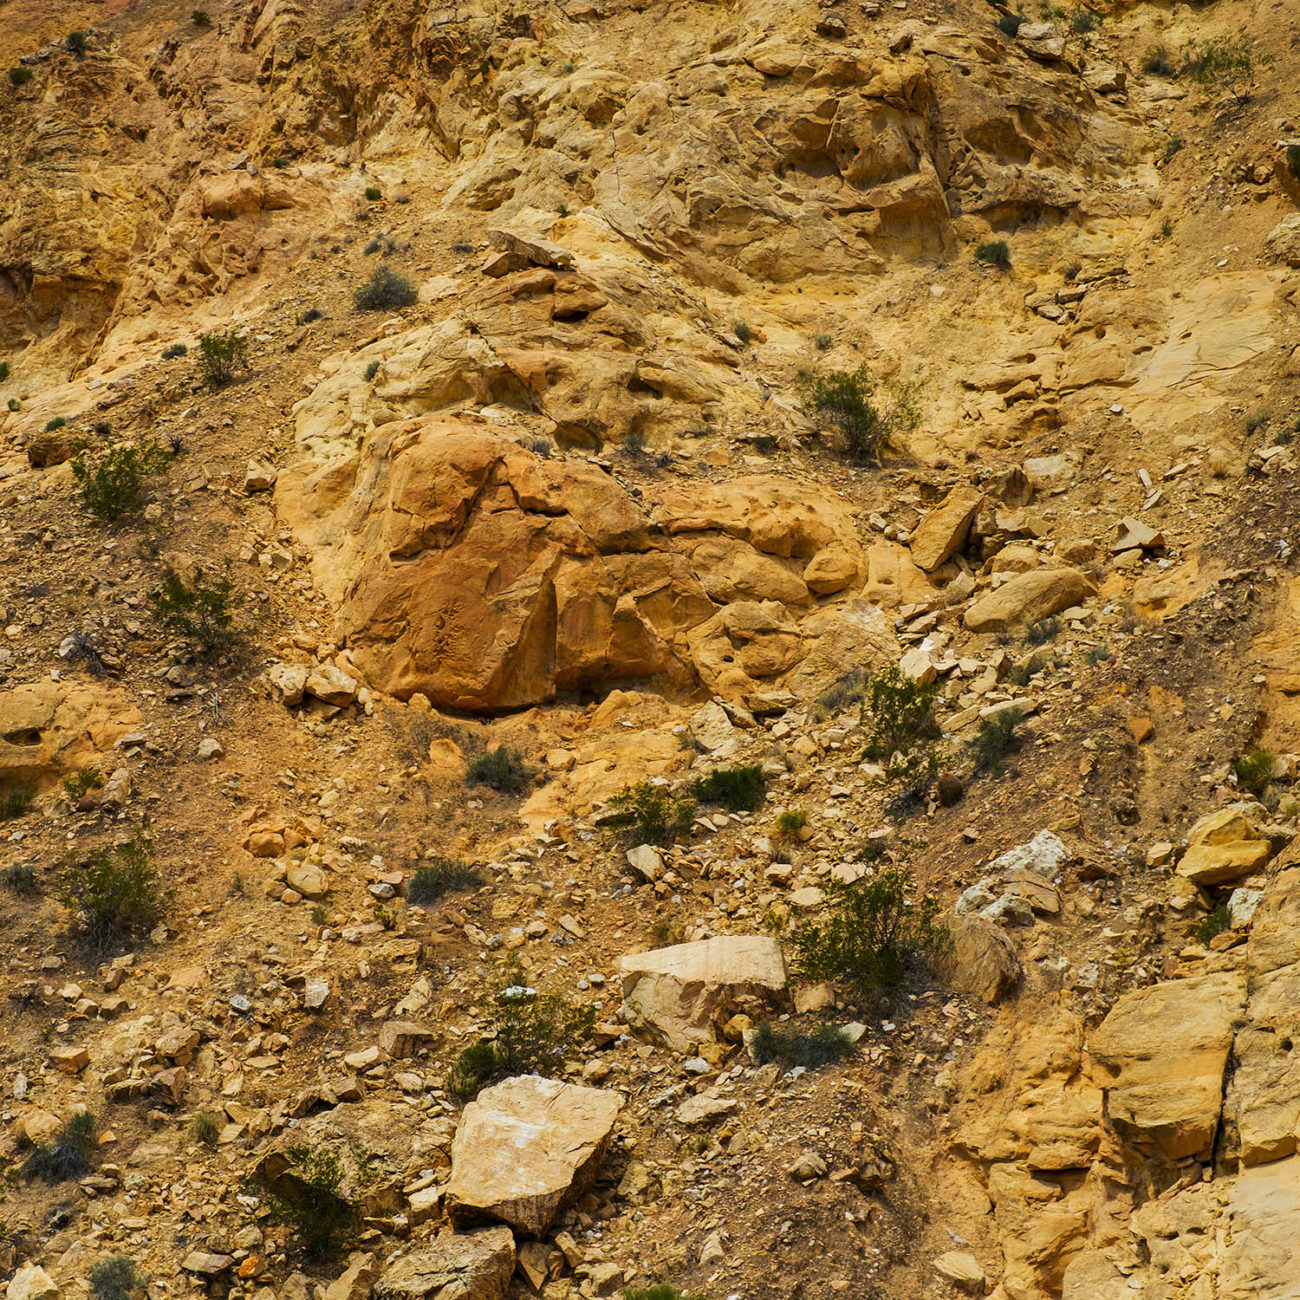 Earthscape with falling rocks, Utah, 2012